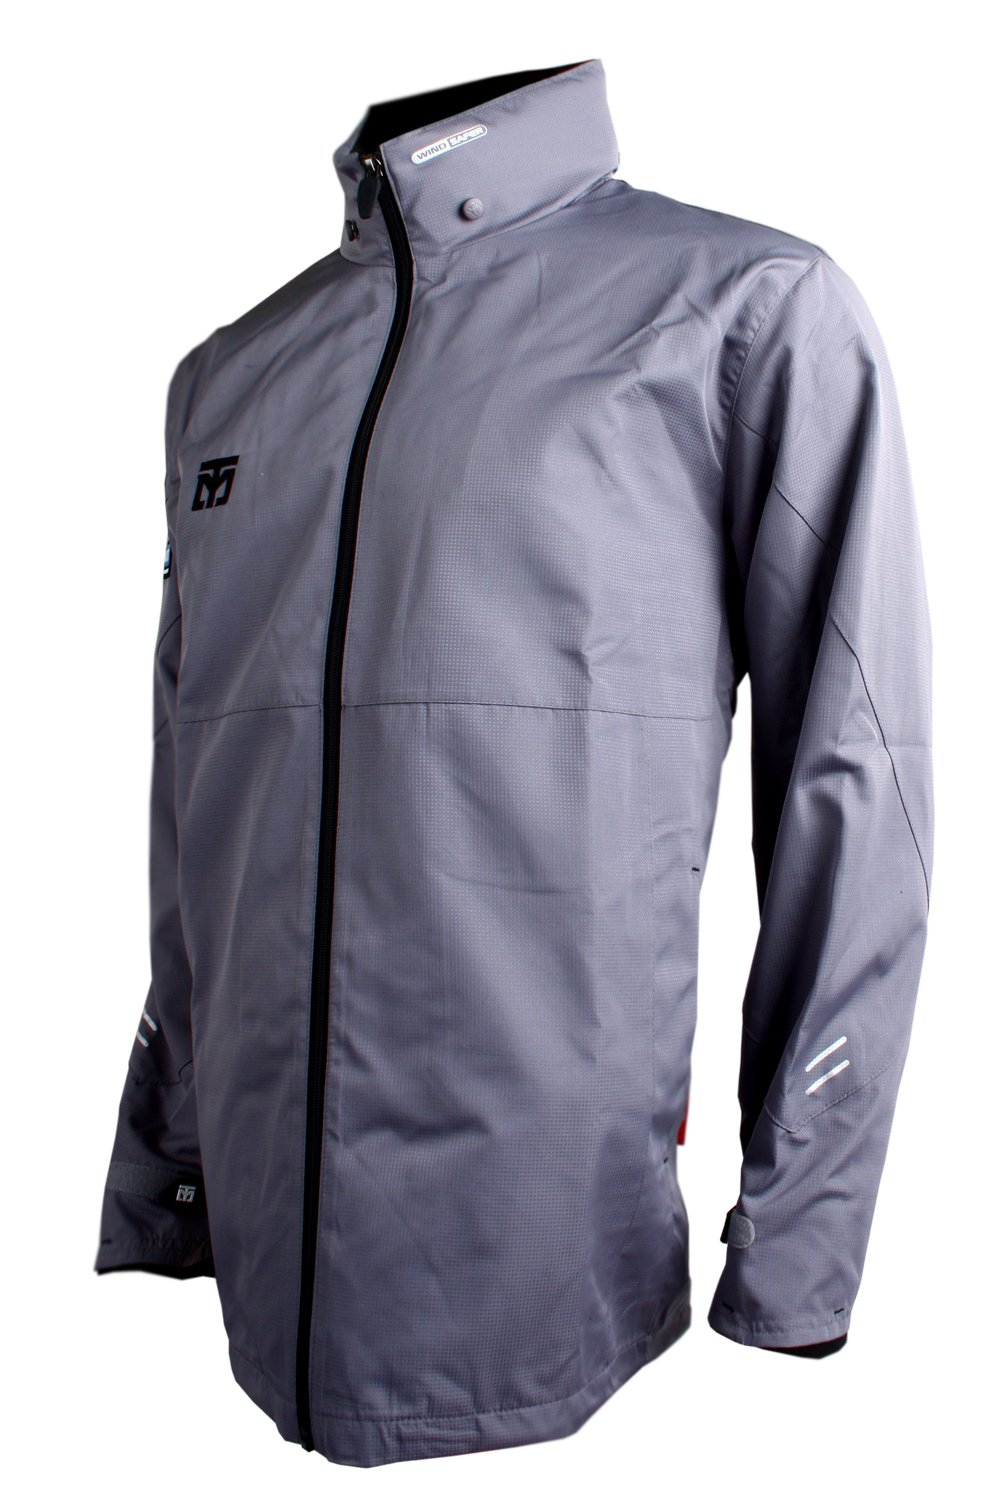 Mooto Wings Wind Breaker 4 Color Jacket Training TaeKwonDo 4.26ft to 6.88ft (Gray, 190(180cm-190cm or 5.90ft-6.23ft)) by Mooto